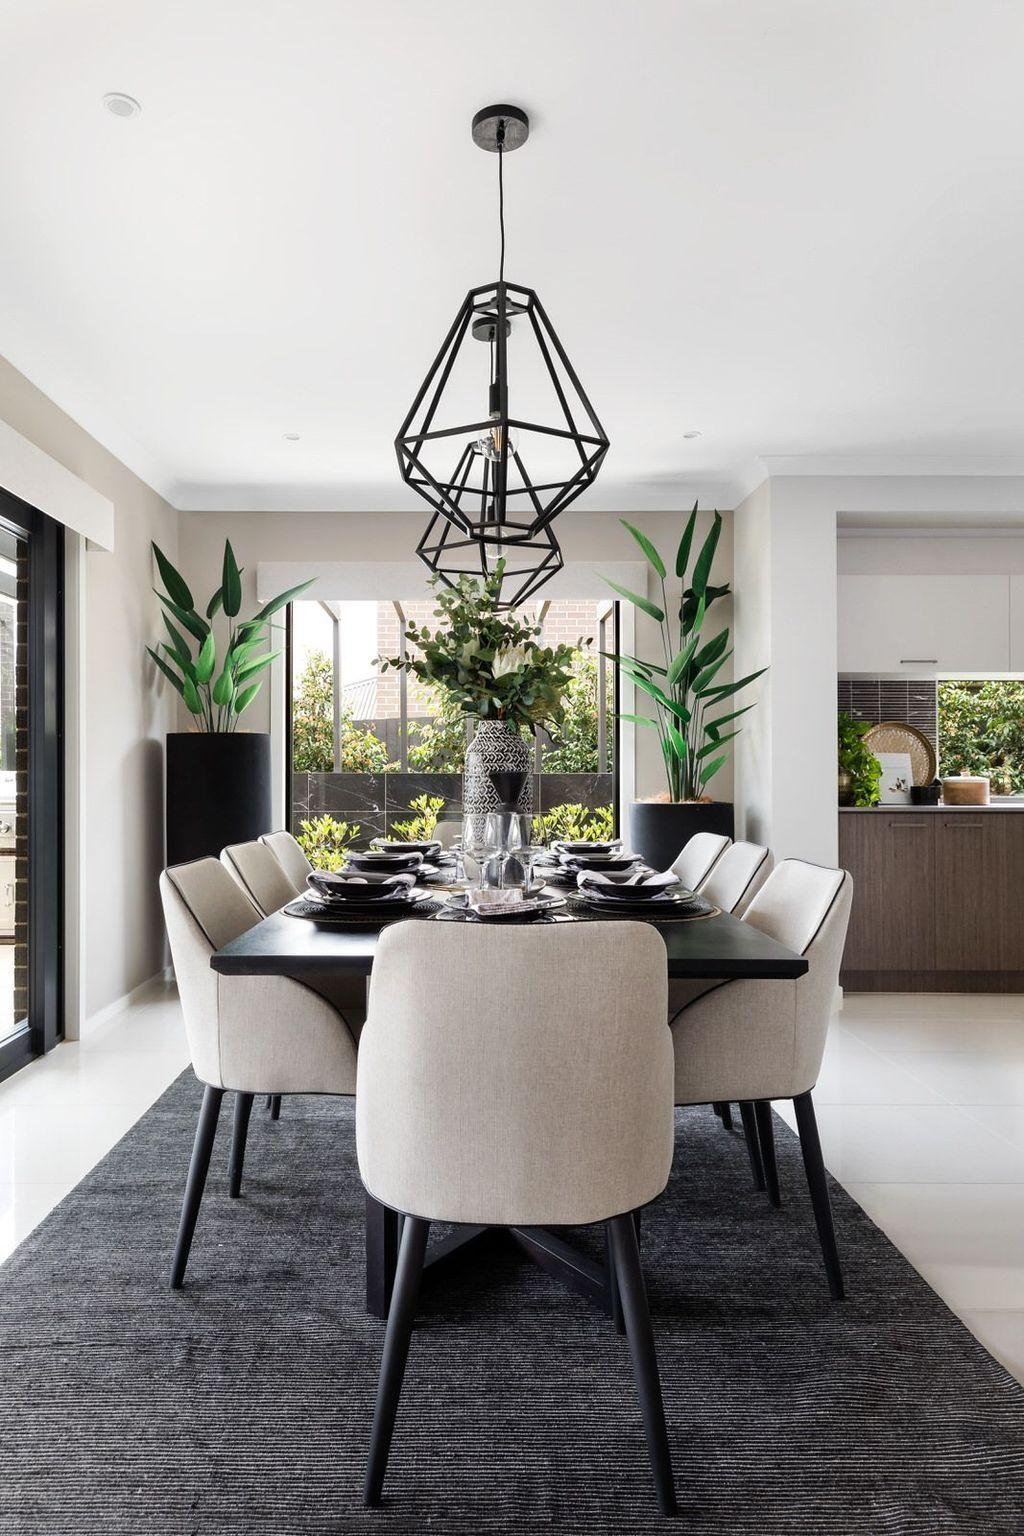 30 Marvelous Contemporary Style Decor Ideas For Your Dining Room